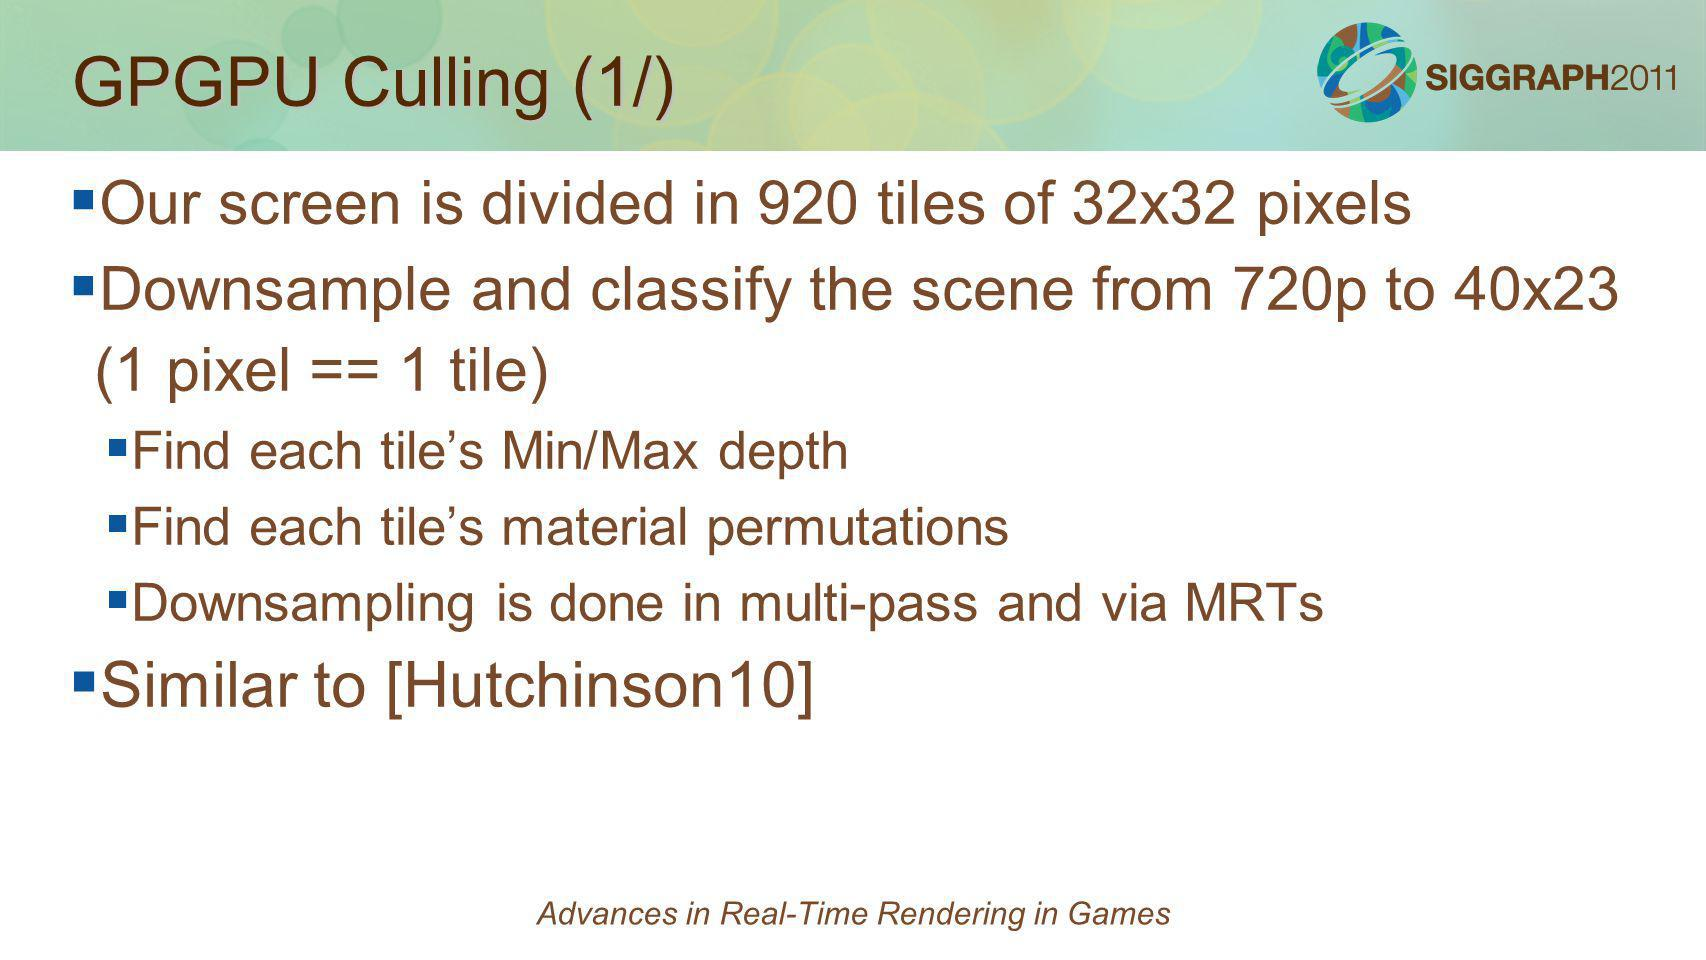 GPGPU Culling (1/) Our screen is divided in 920 tiles of 32x32 pixels Downsample and classify the scene from 720p to 40x23 (1 pixel == 1 tile) Find ea